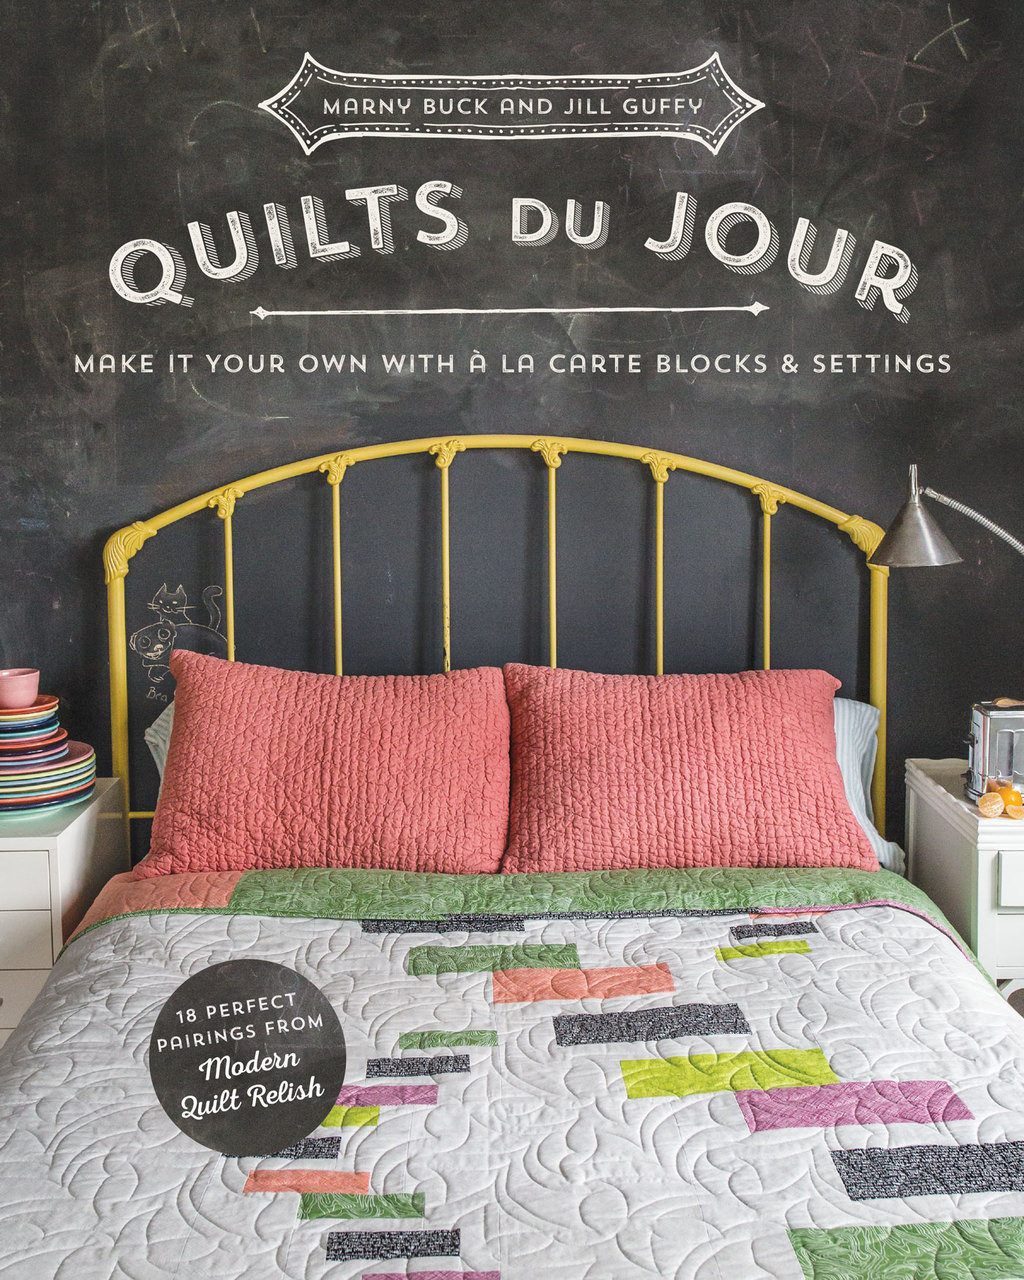 Quilts du Jour: Make It Your Own with à la Carte Blocks & Settings